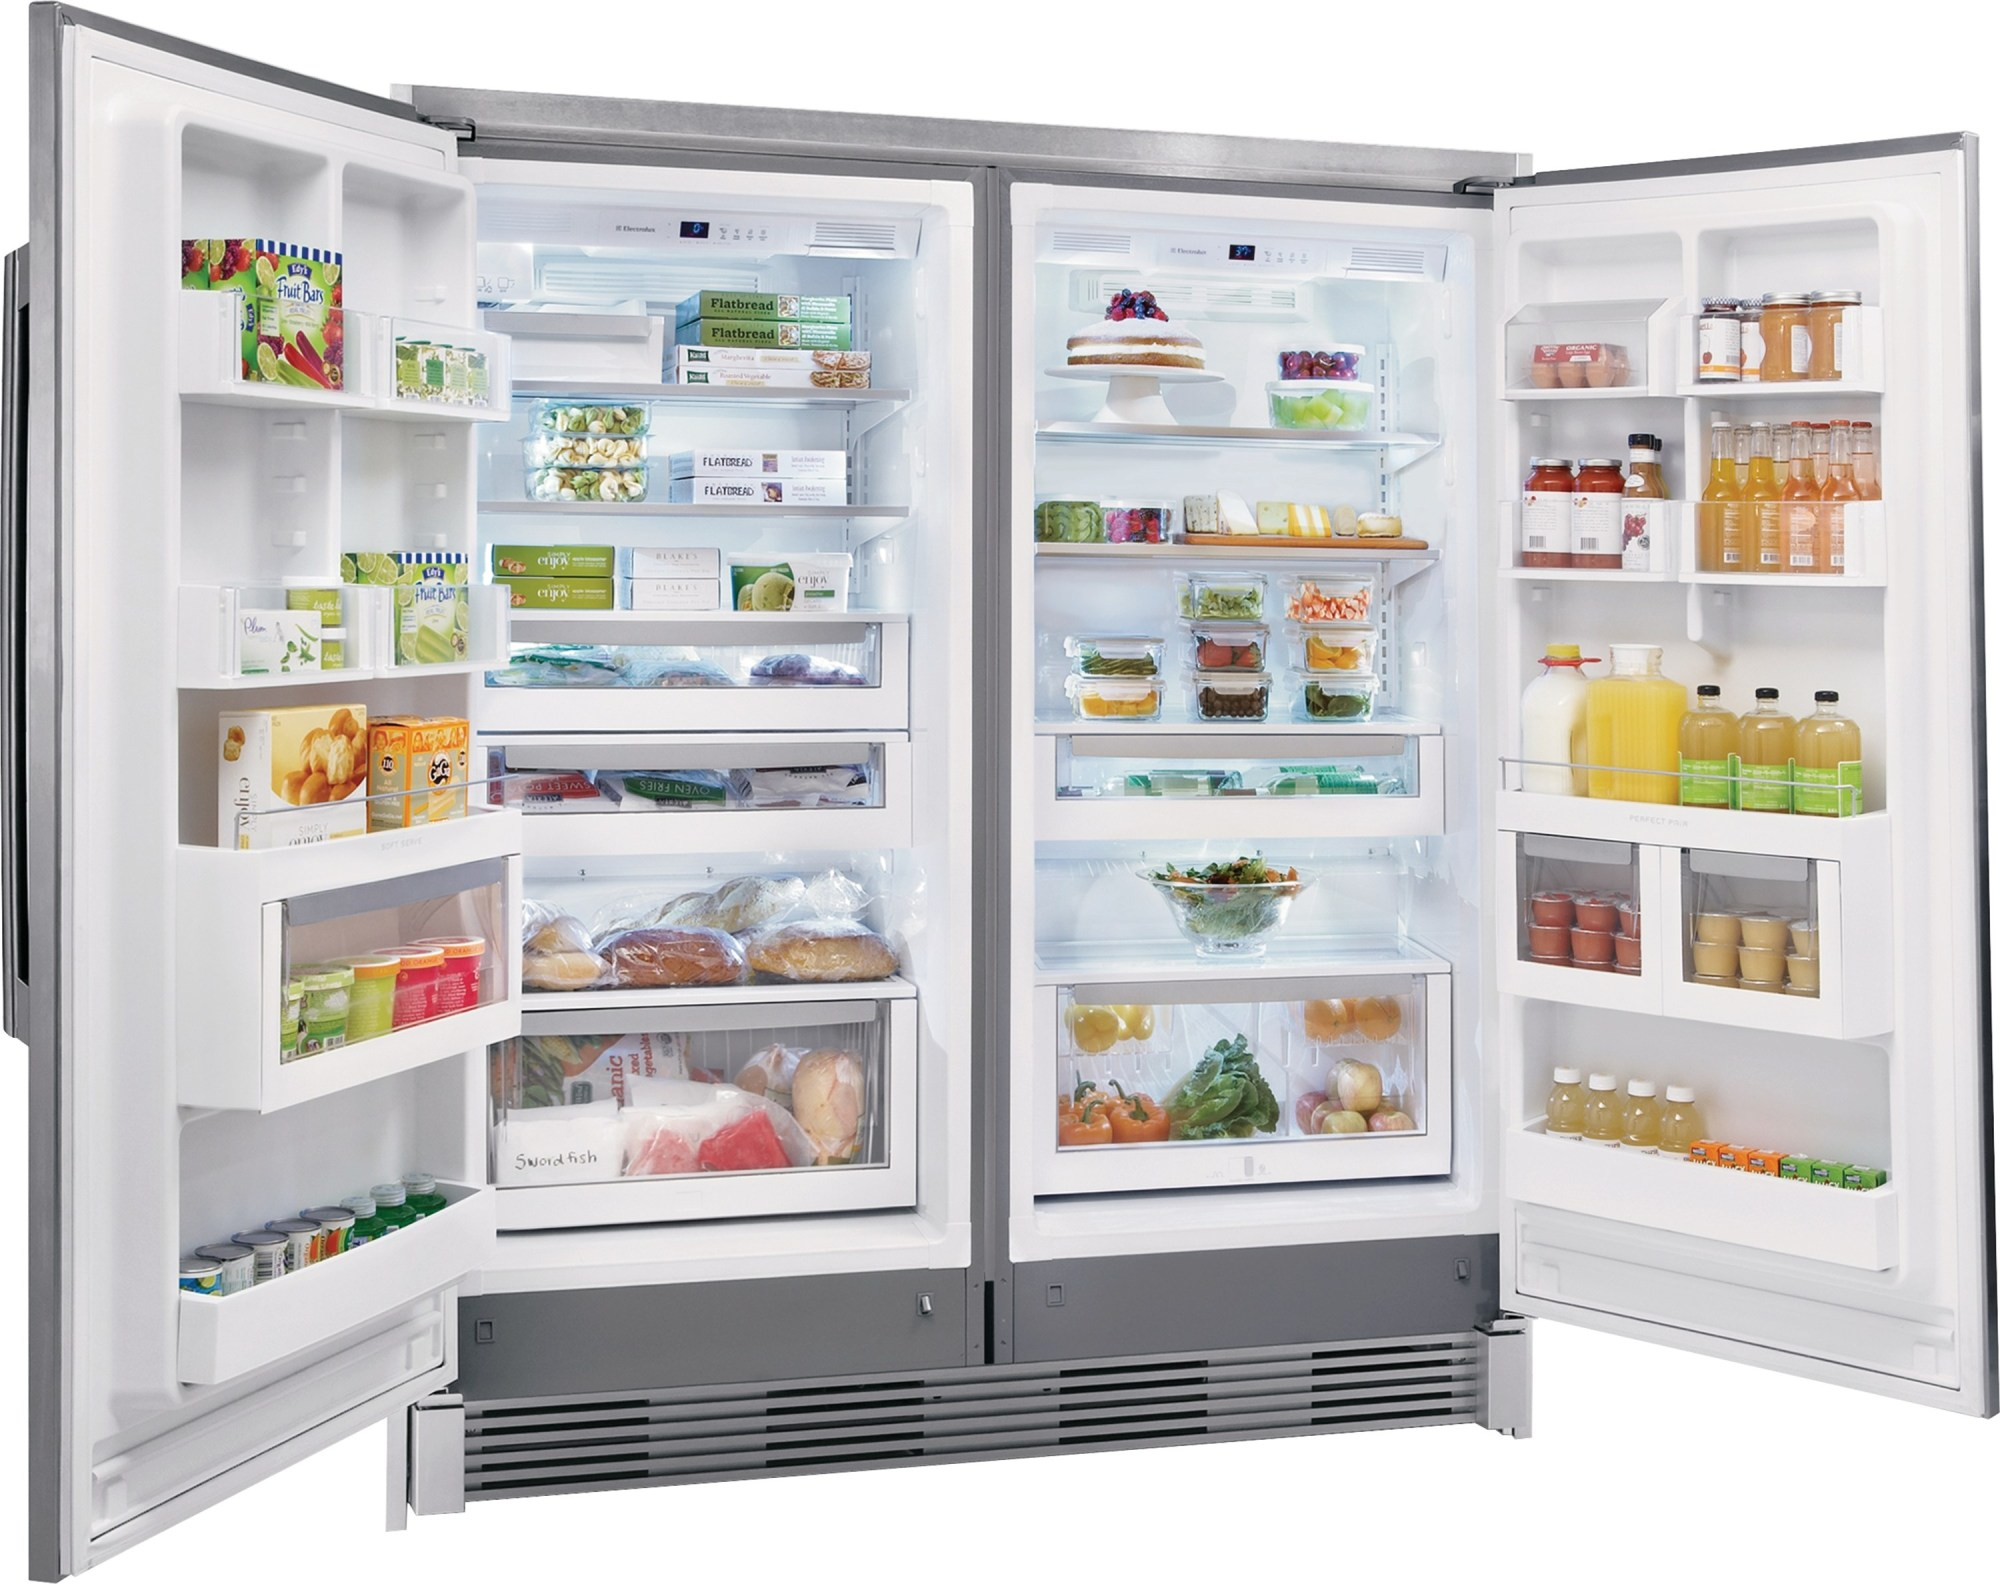 hight resolution of electrolux ei32ar80qs all refrigerator with iq touch controlsmodel ei32ar80qs all refrigerator with iq touch